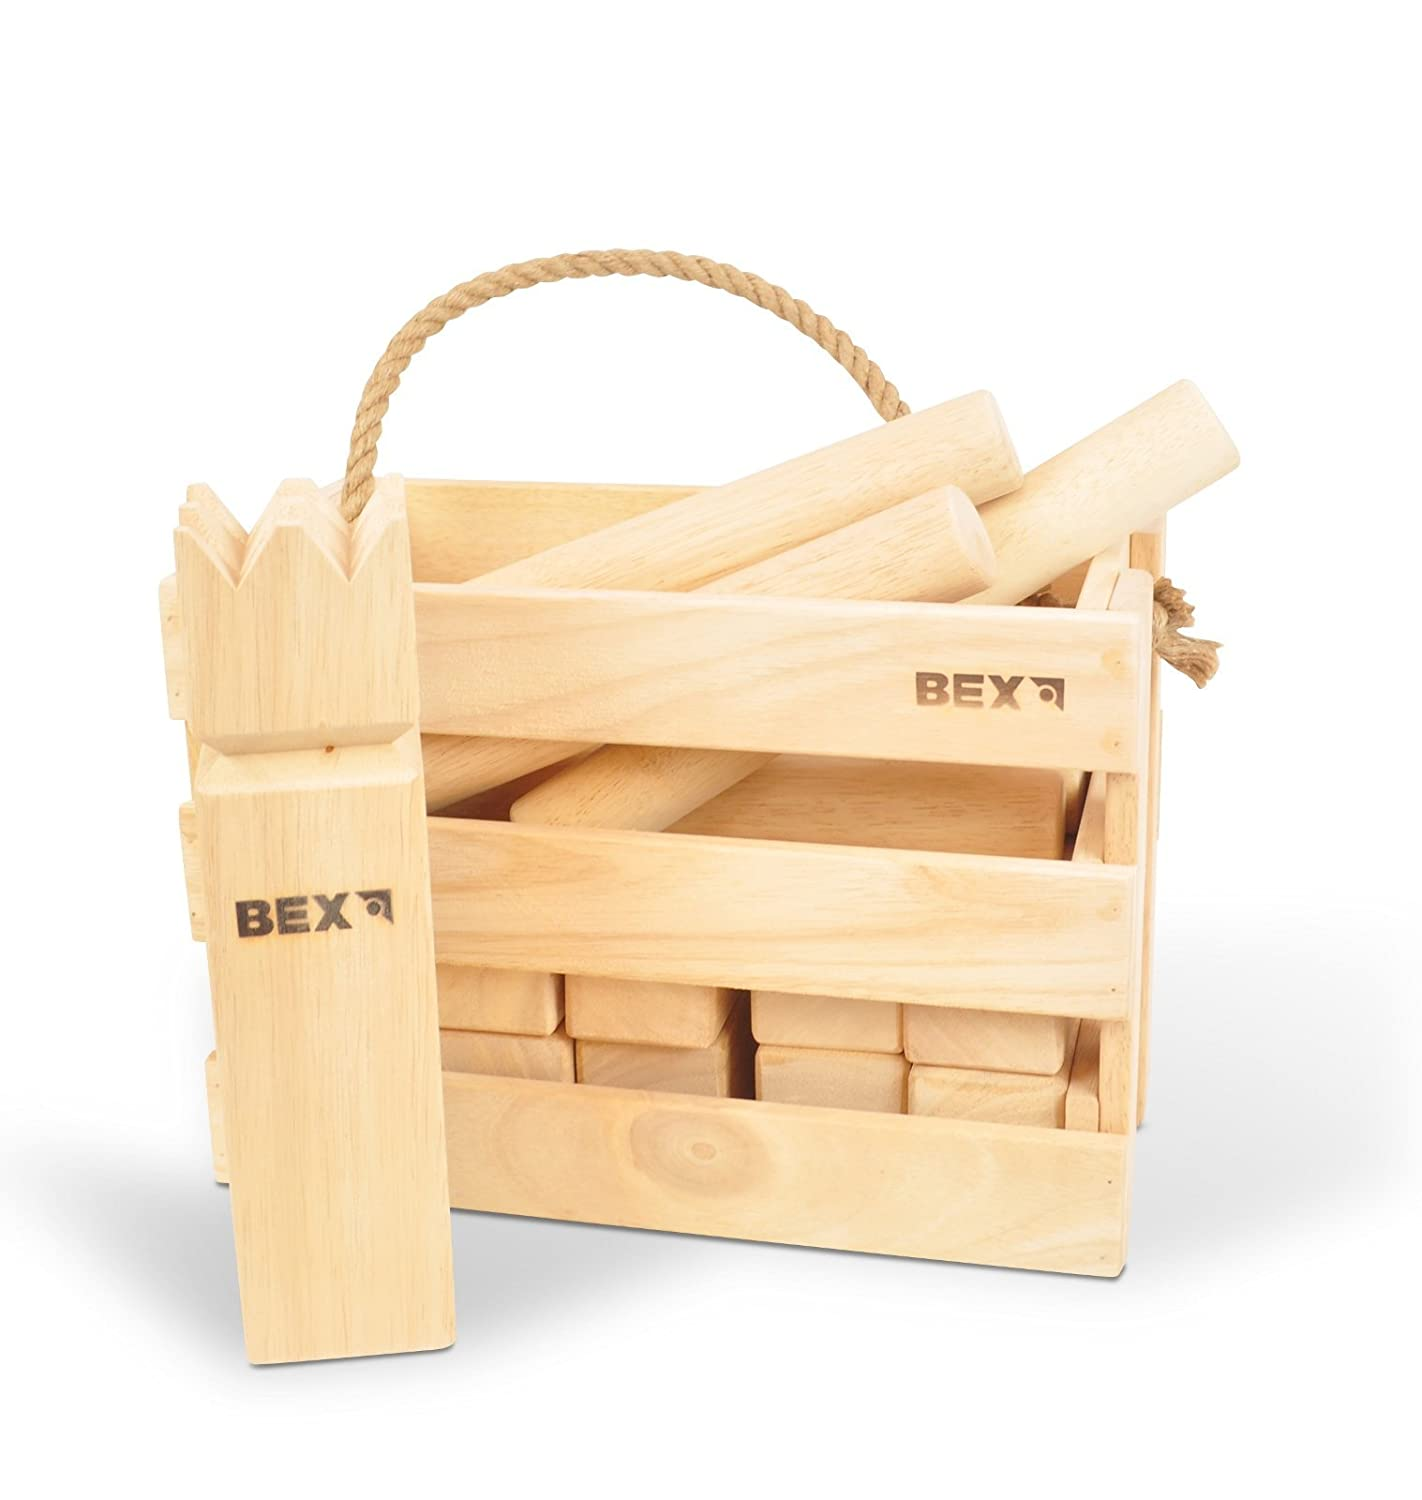 Bex KUBB Viking Original in stilechter Holzbox